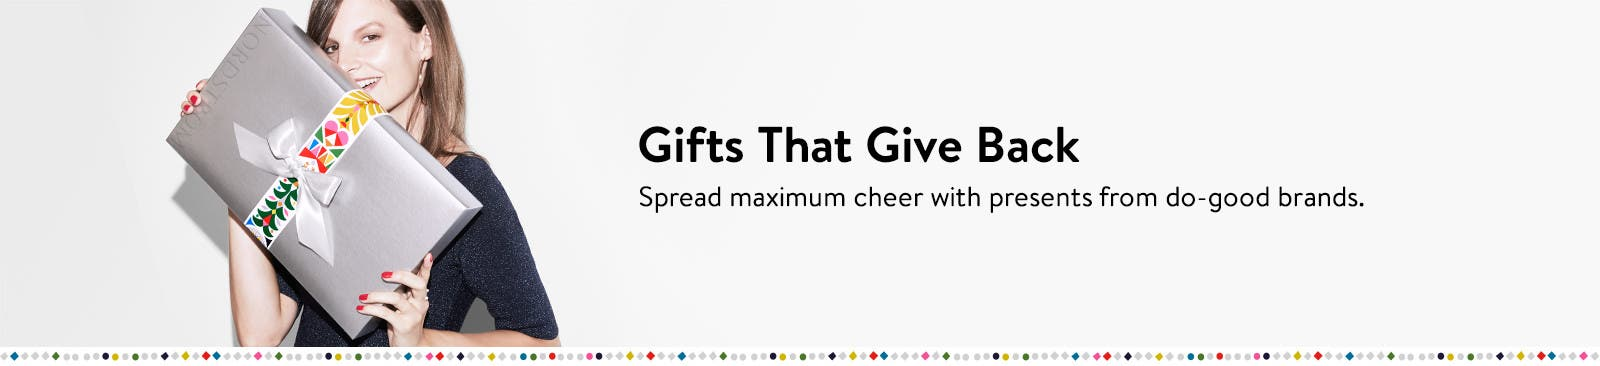 Gifts that give back.